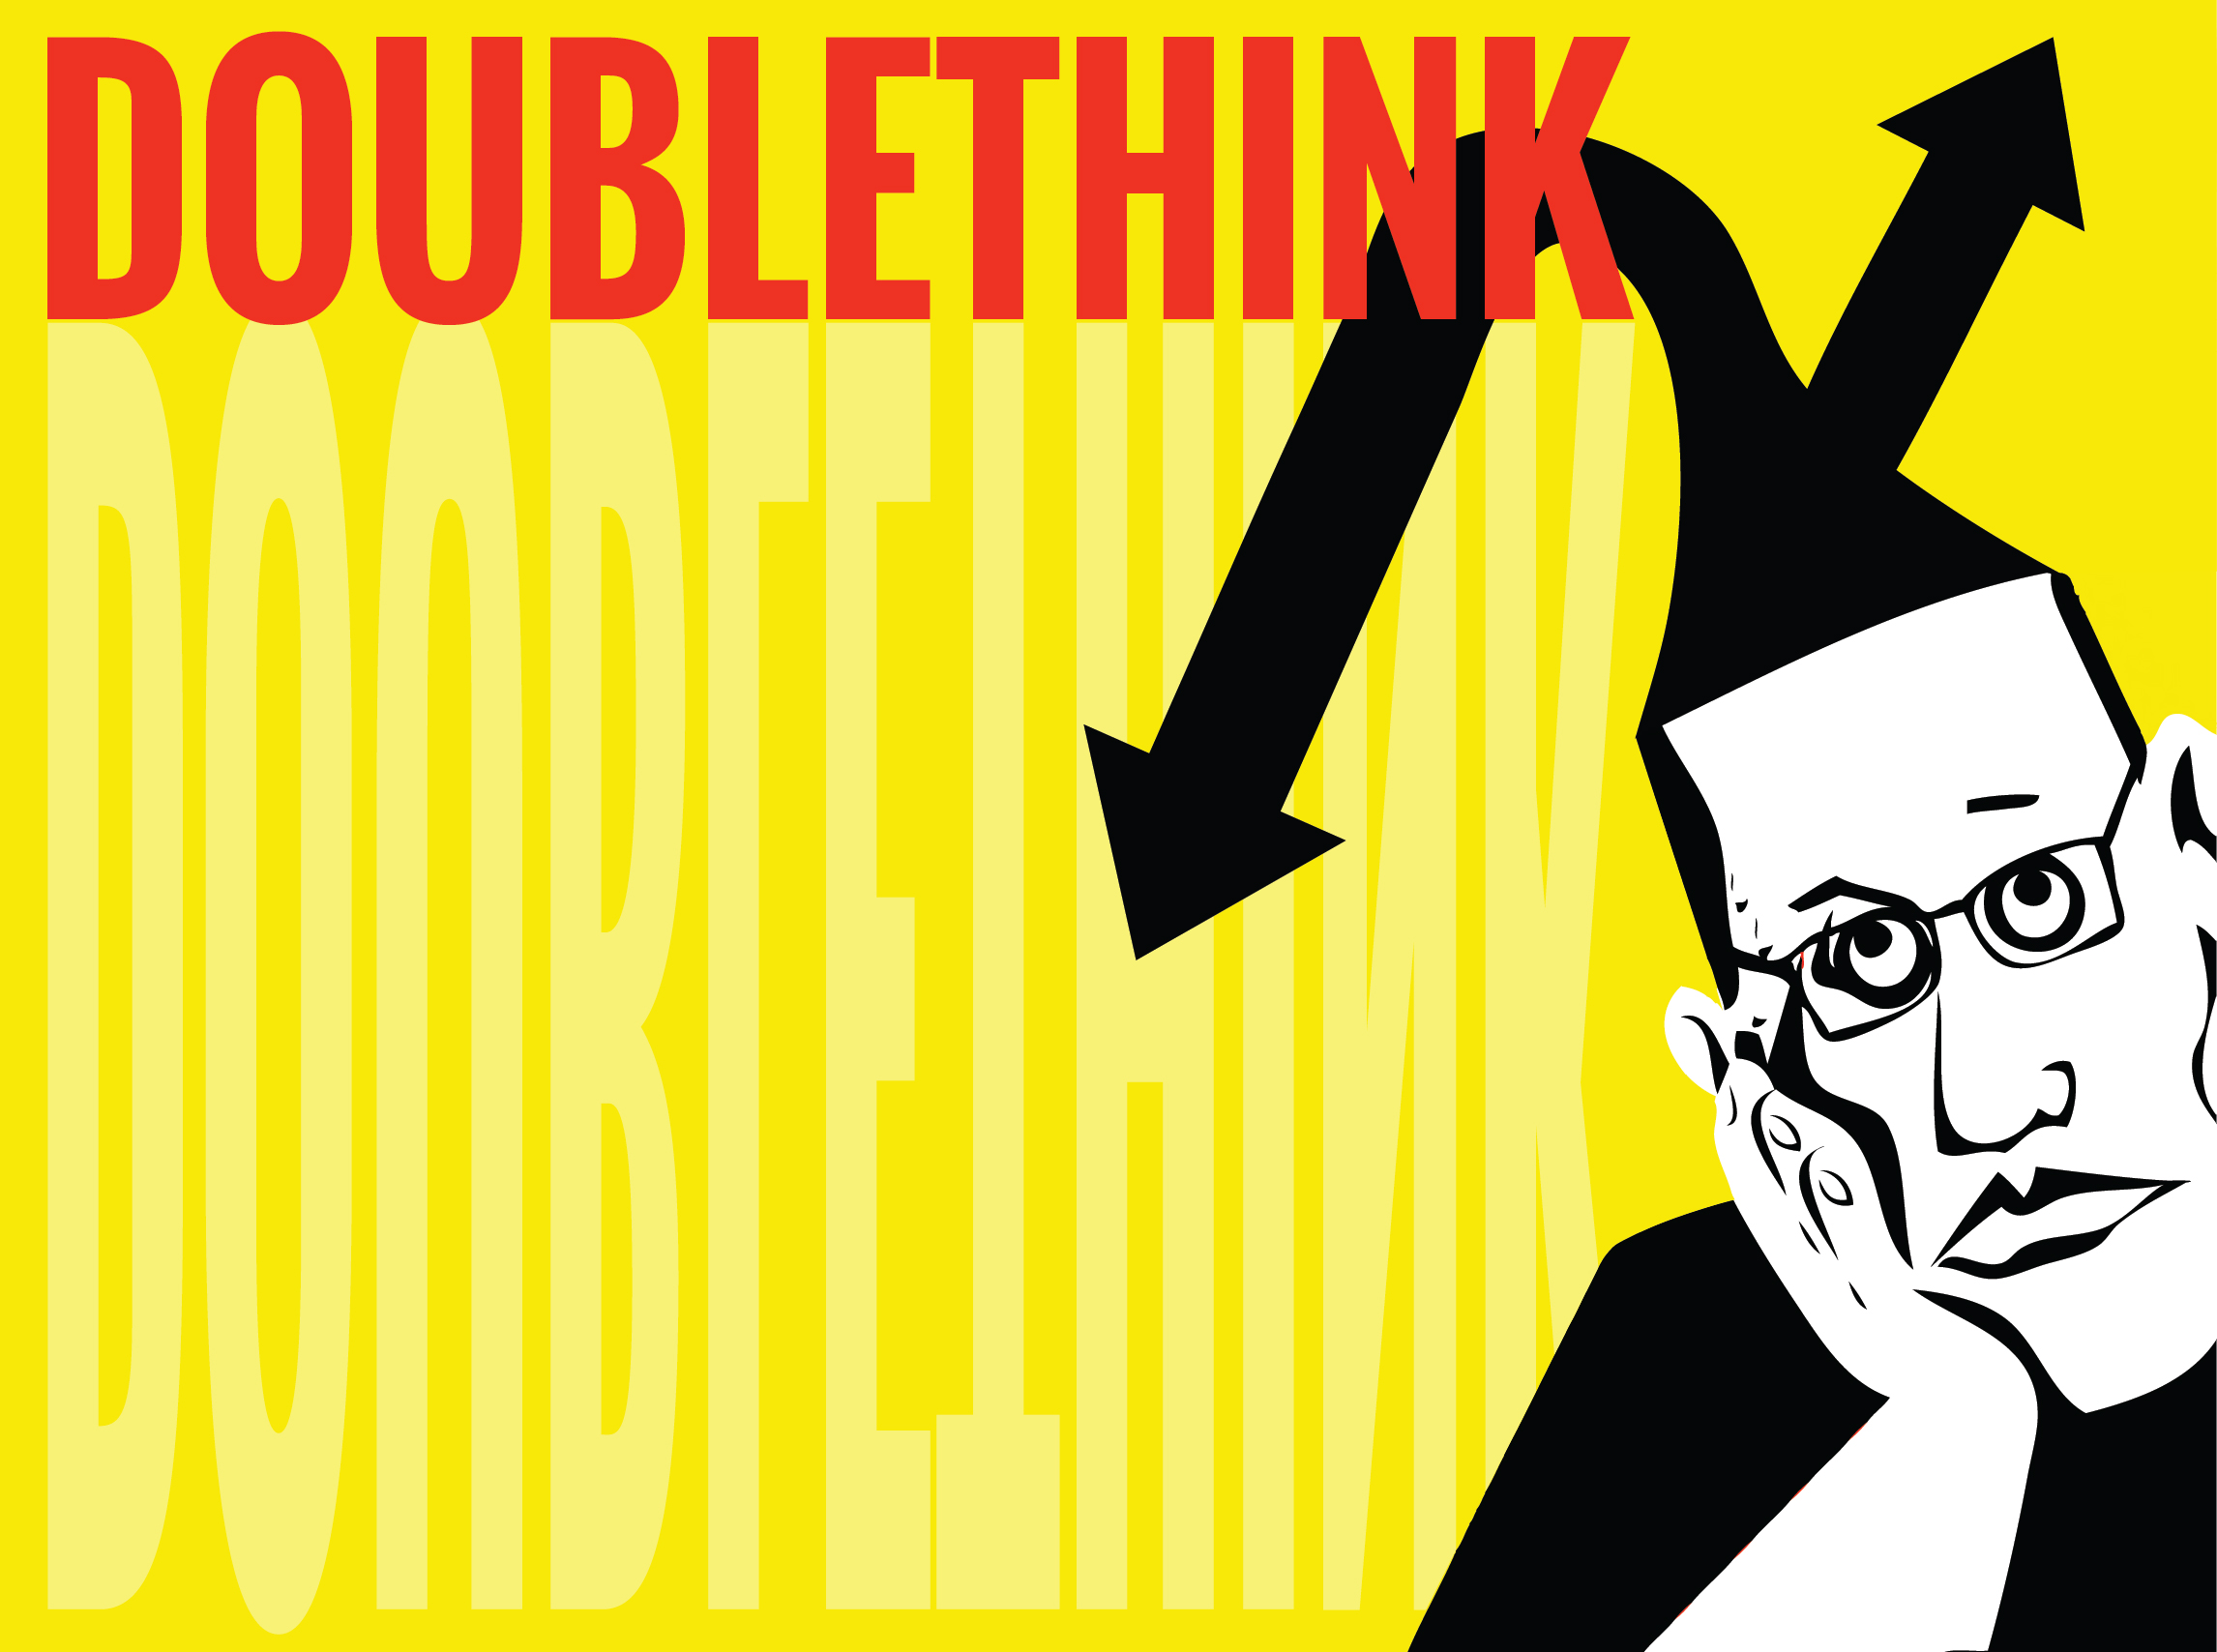 """Contradictory arrows popping out of cartoon head. Large red letters: """"DOUBLETHINK"""""""